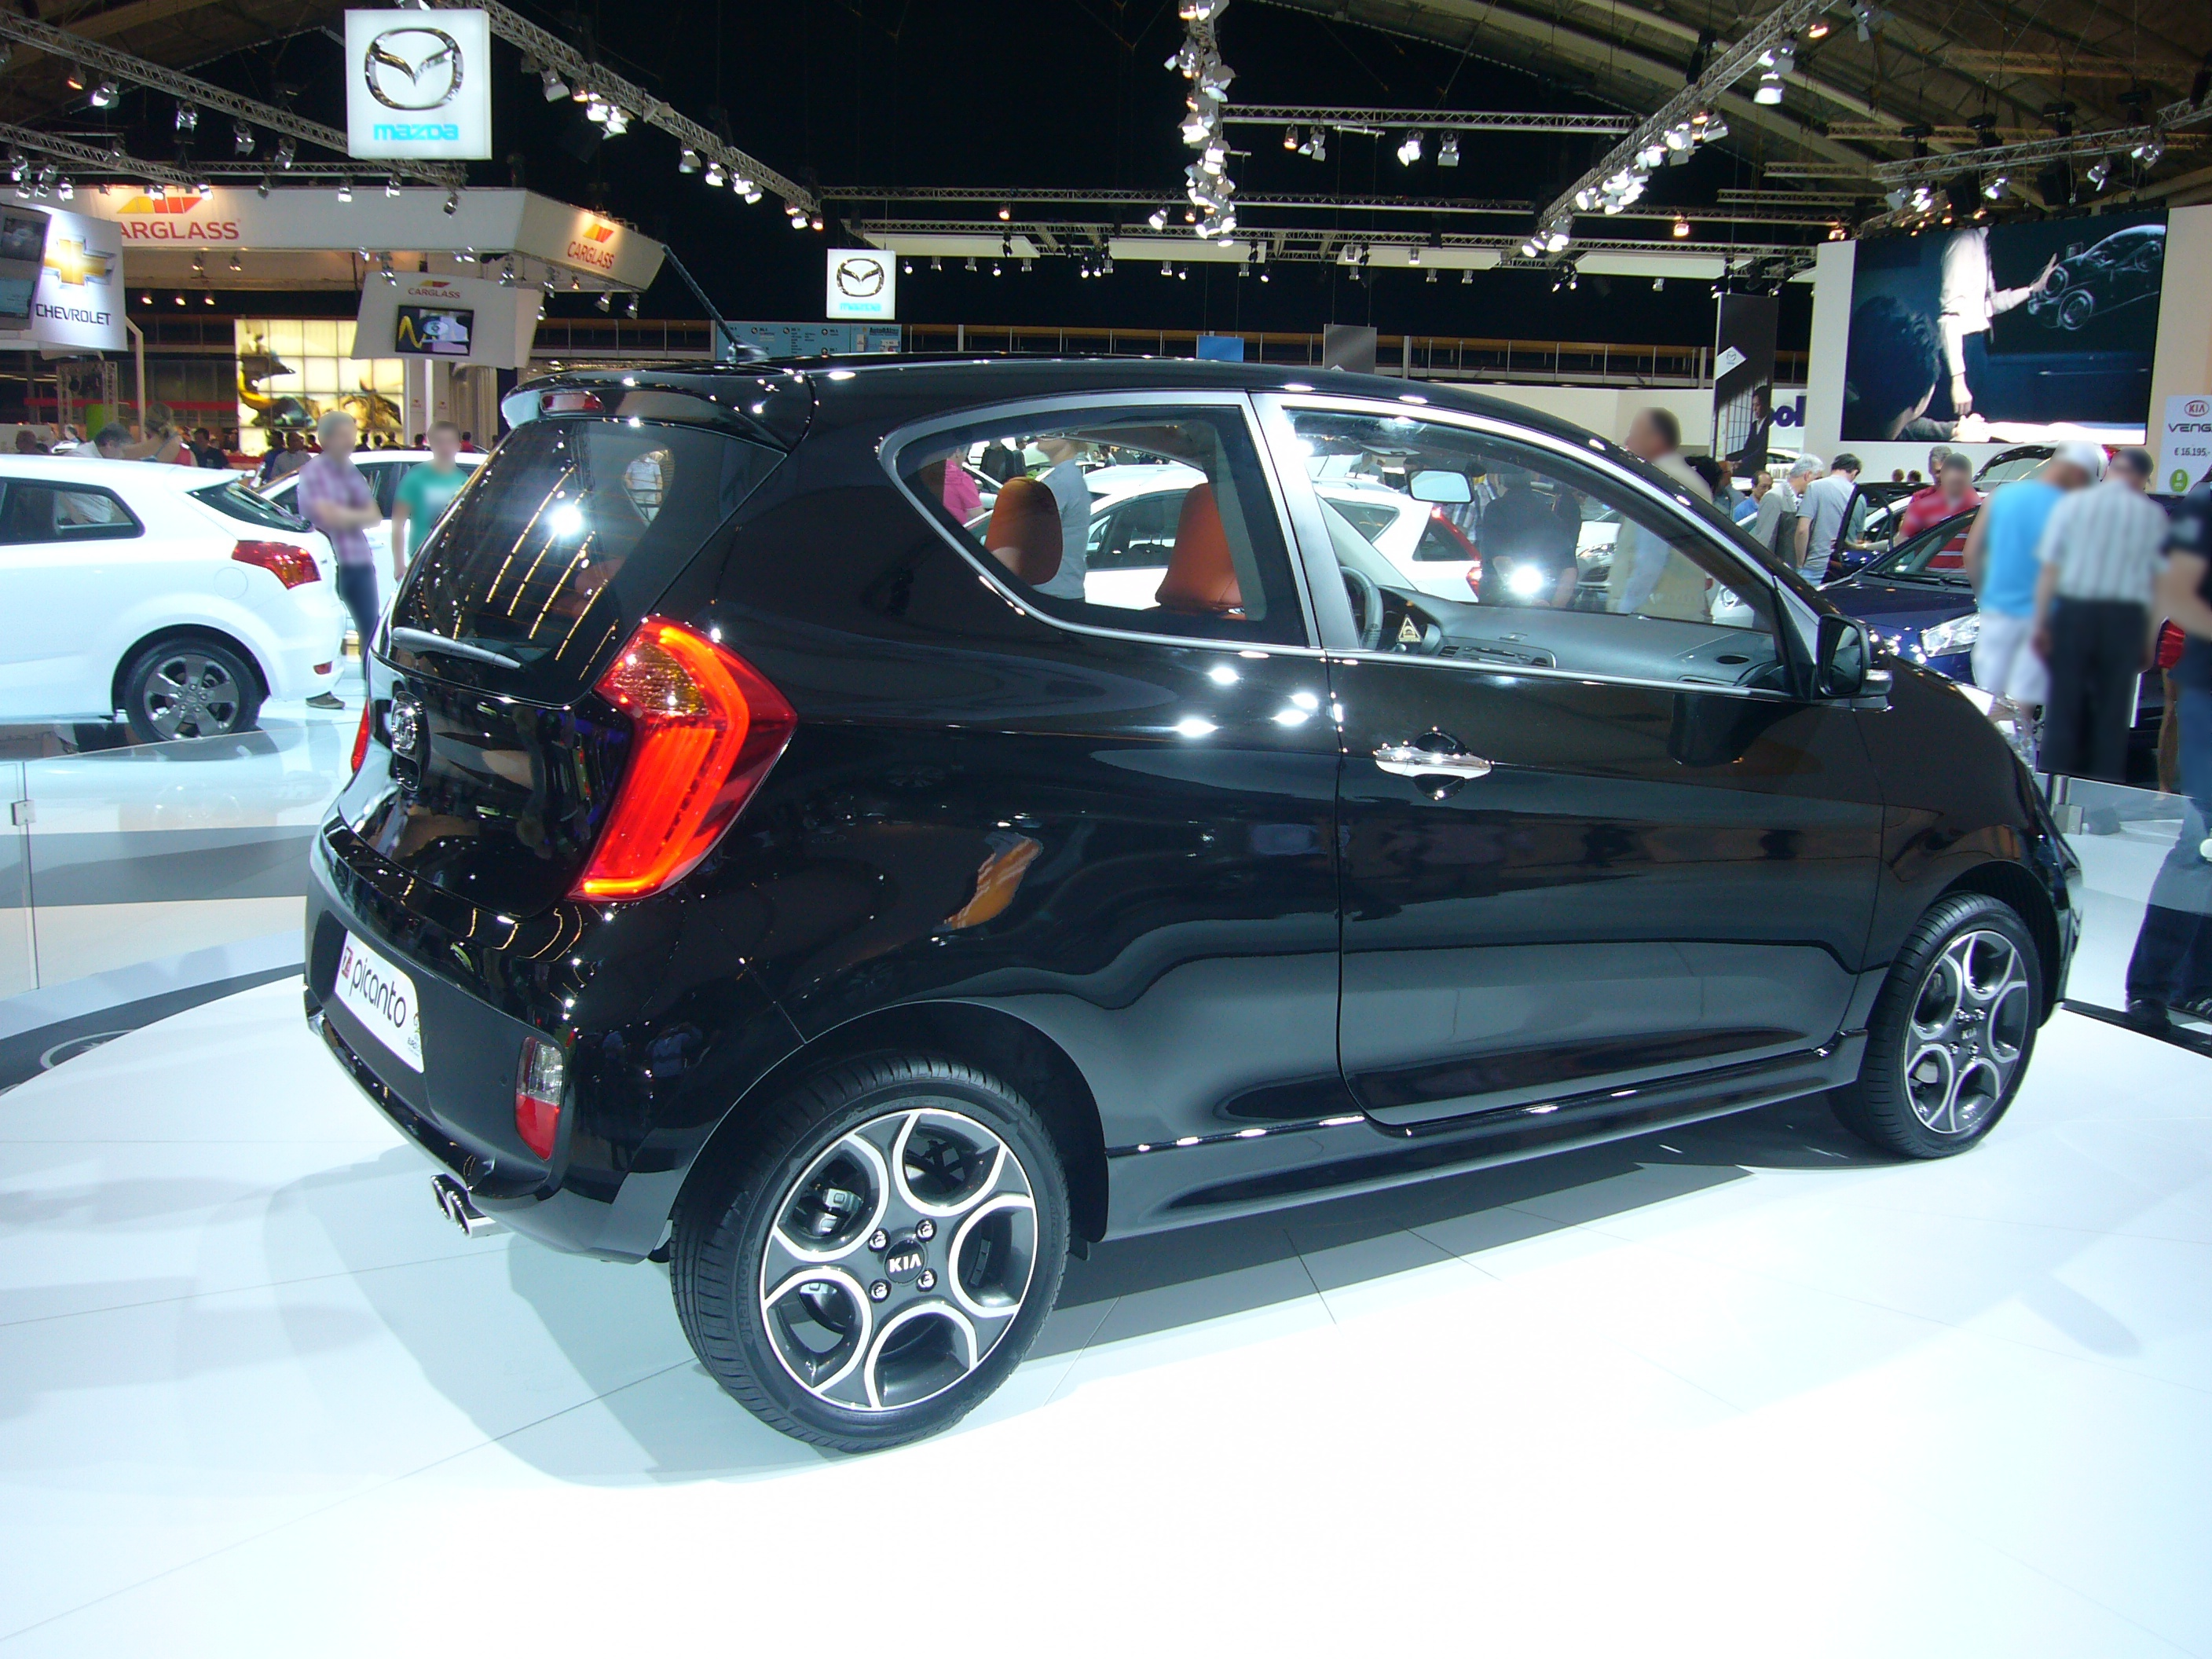 file kia picanto 3 door rear quarter jpg wikimedia commons. Black Bedroom Furniture Sets. Home Design Ideas